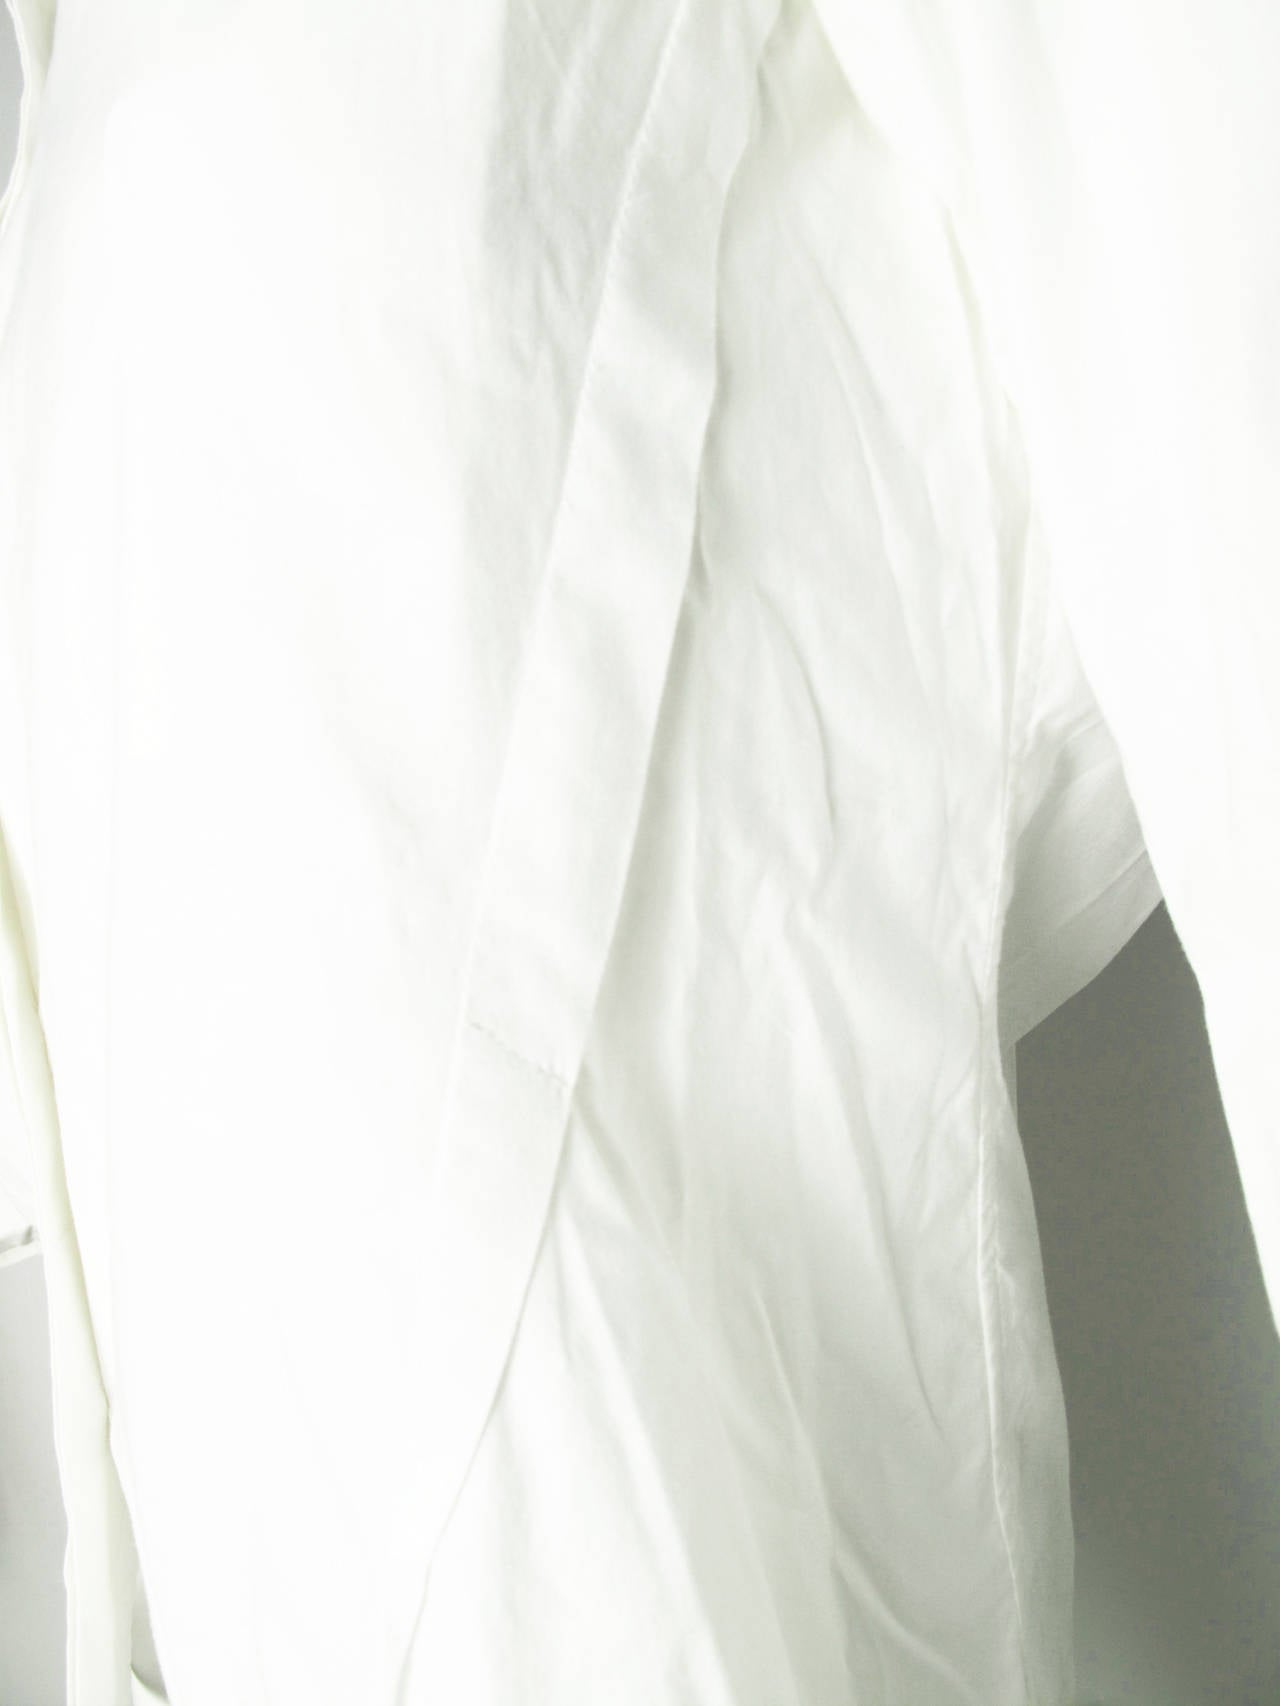 Issey Miyake White Button Down Shirt In Excellent Condition For Sale In Austin, TX